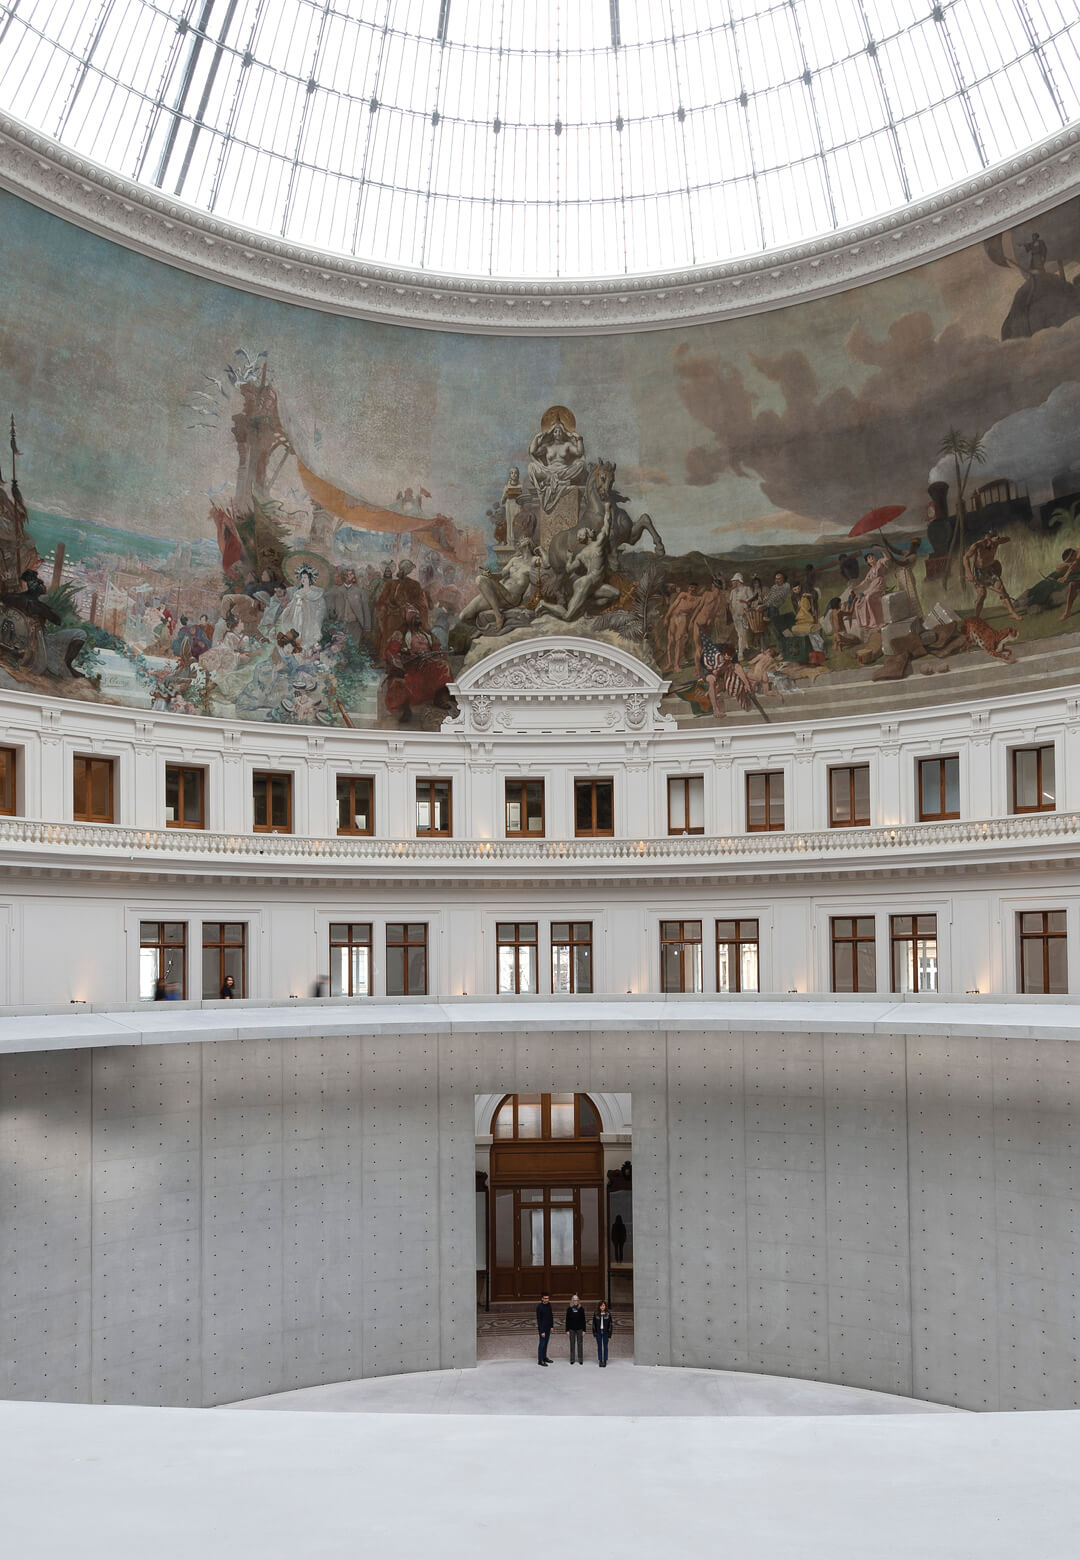 A panorama of the Bourse de Commerce restored by Tadao Ando | Bourse De Commerce – Pinault Collection | Tadao Ando Architect & Associates, Niney and Marca Architects, and Agence Pierre-Antoine Gatier | STIRworld